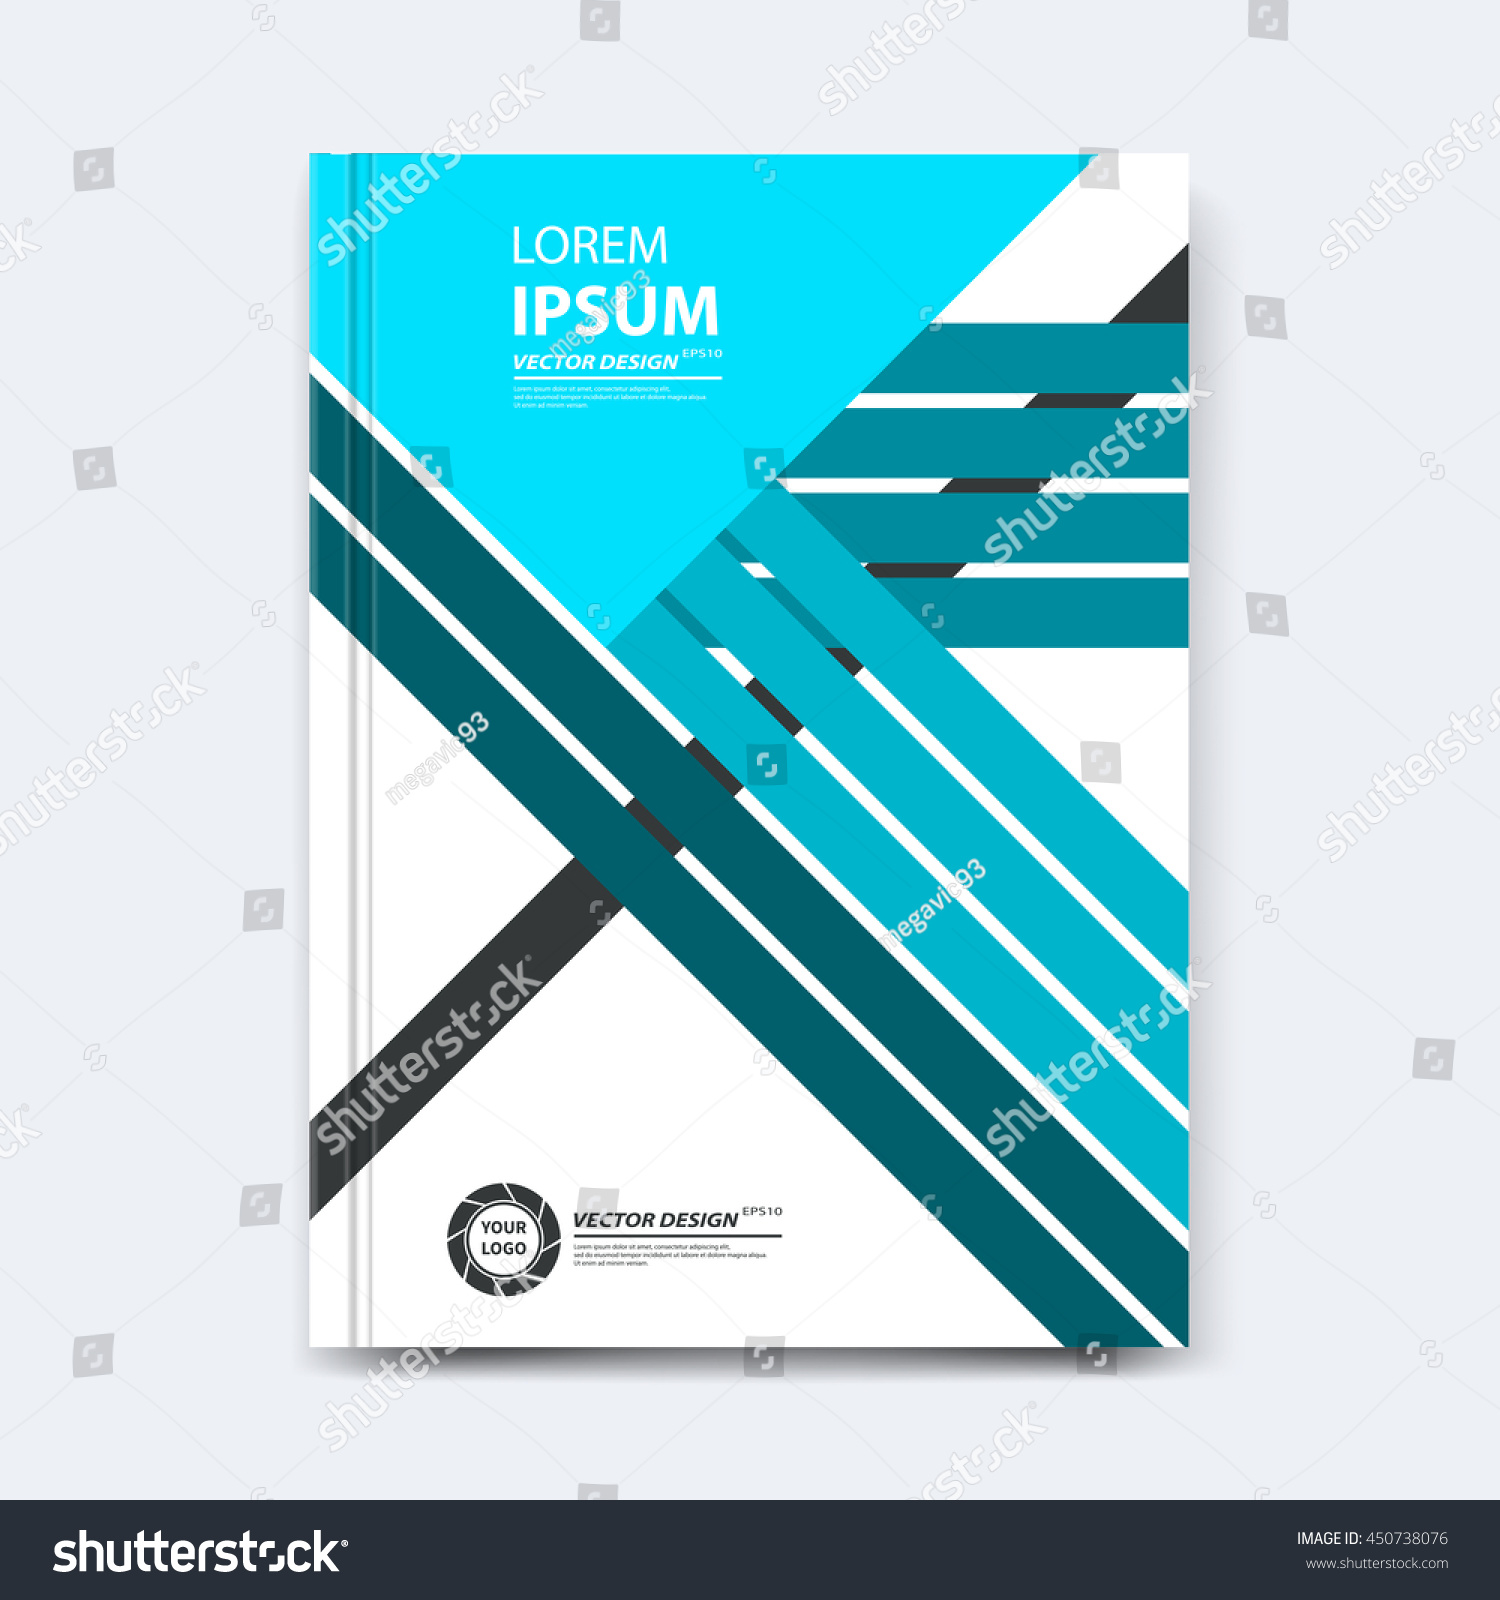 abstract vector design for cover poster banner flyer business abstract vector design for cover poster banner flyer business card magazine